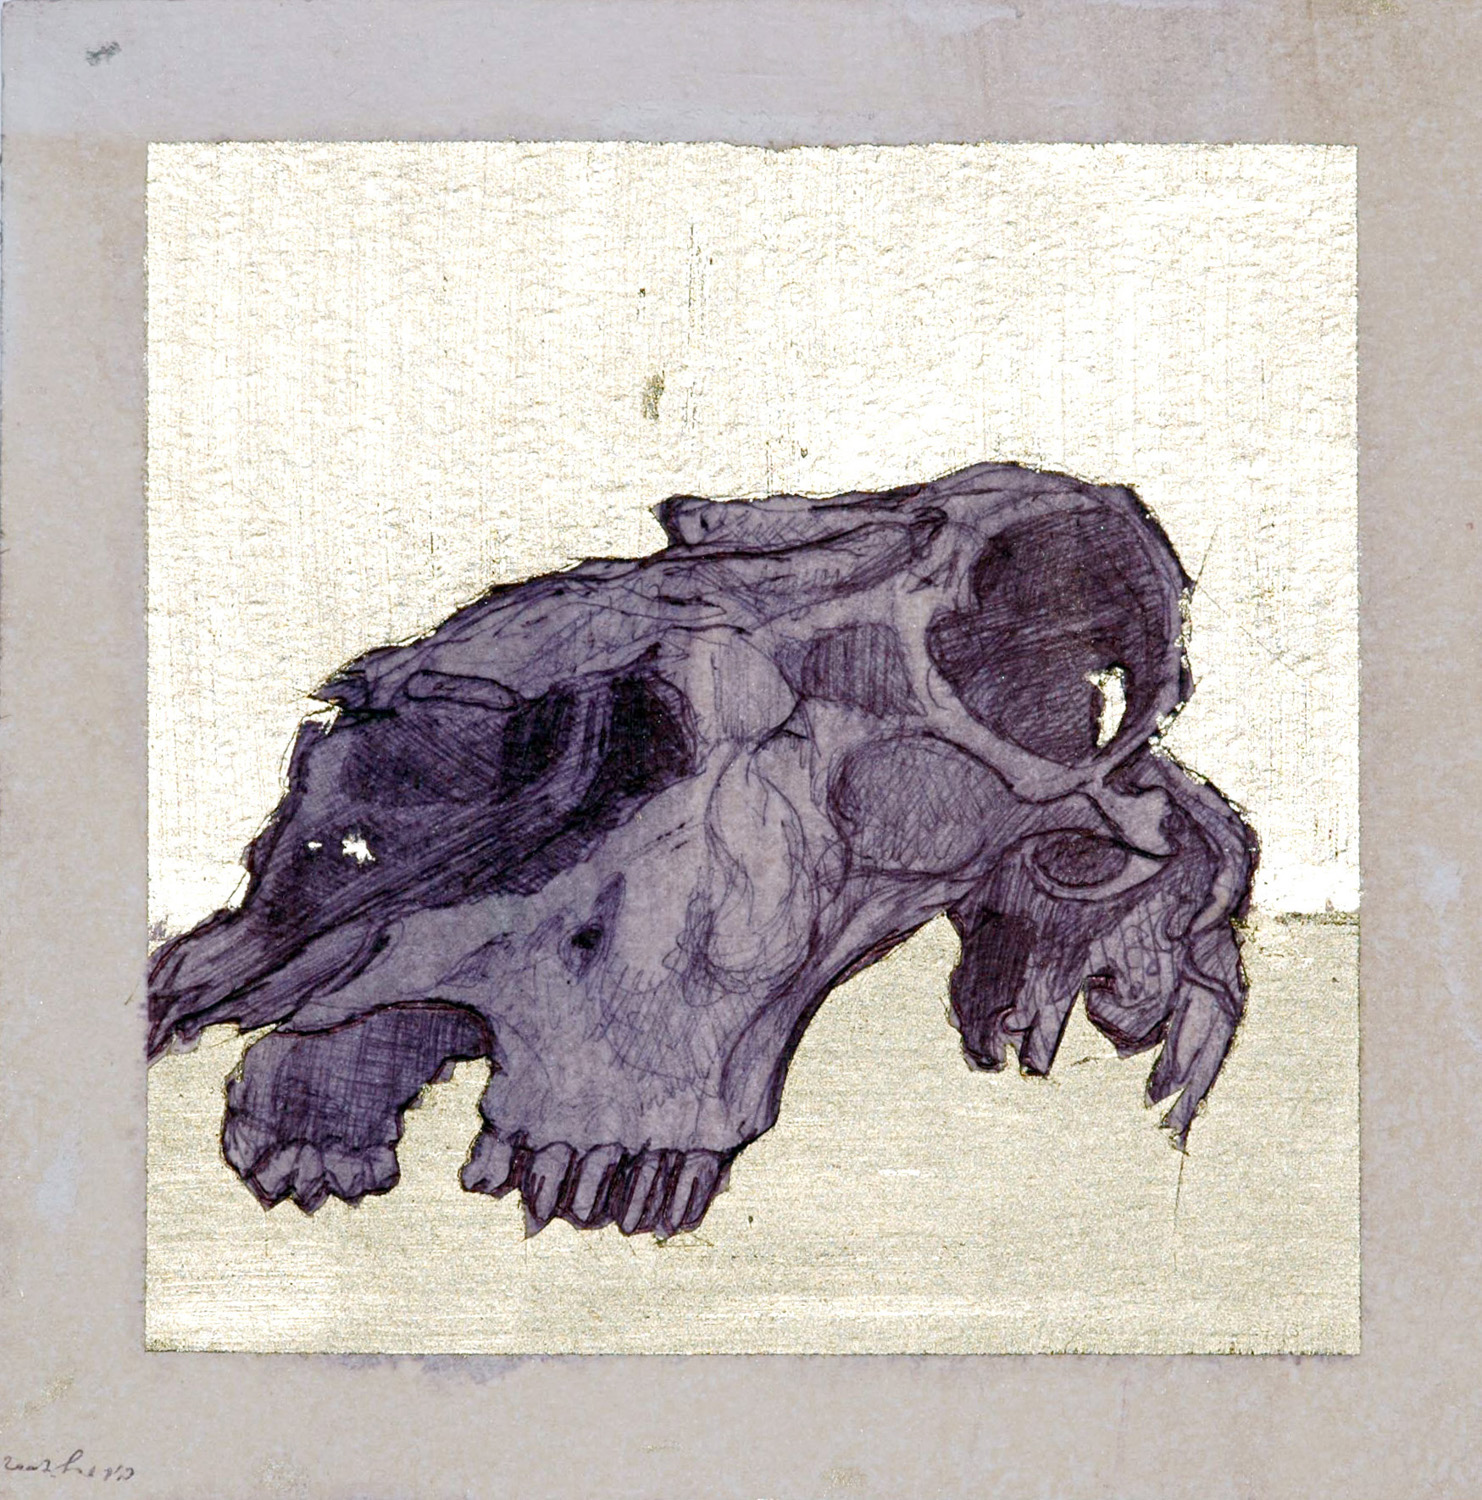 Untitled, Ballpoint and oil on paper, 20x20 cm, 2007